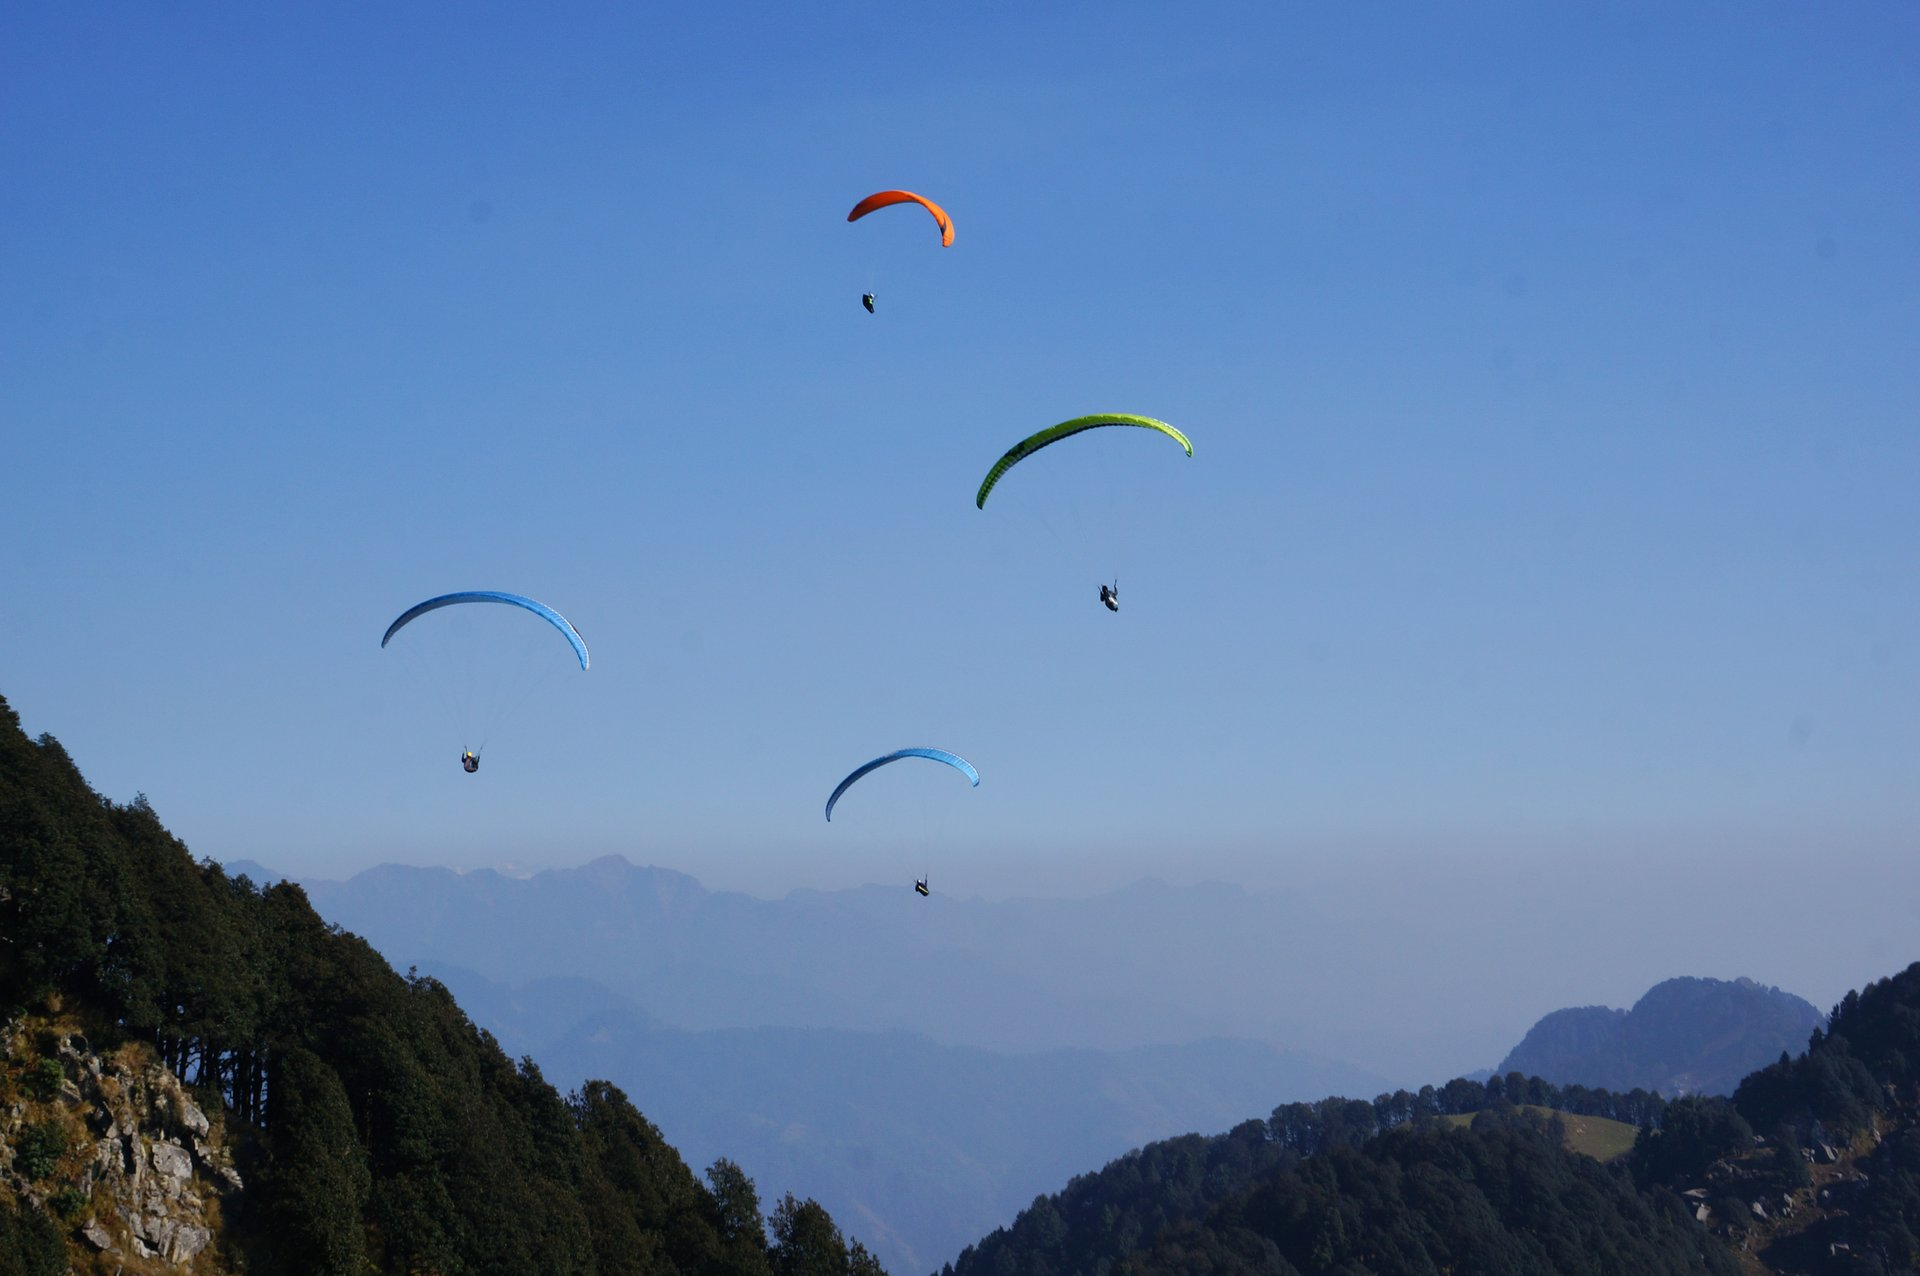 Paragliding in India 2019 - Best Time